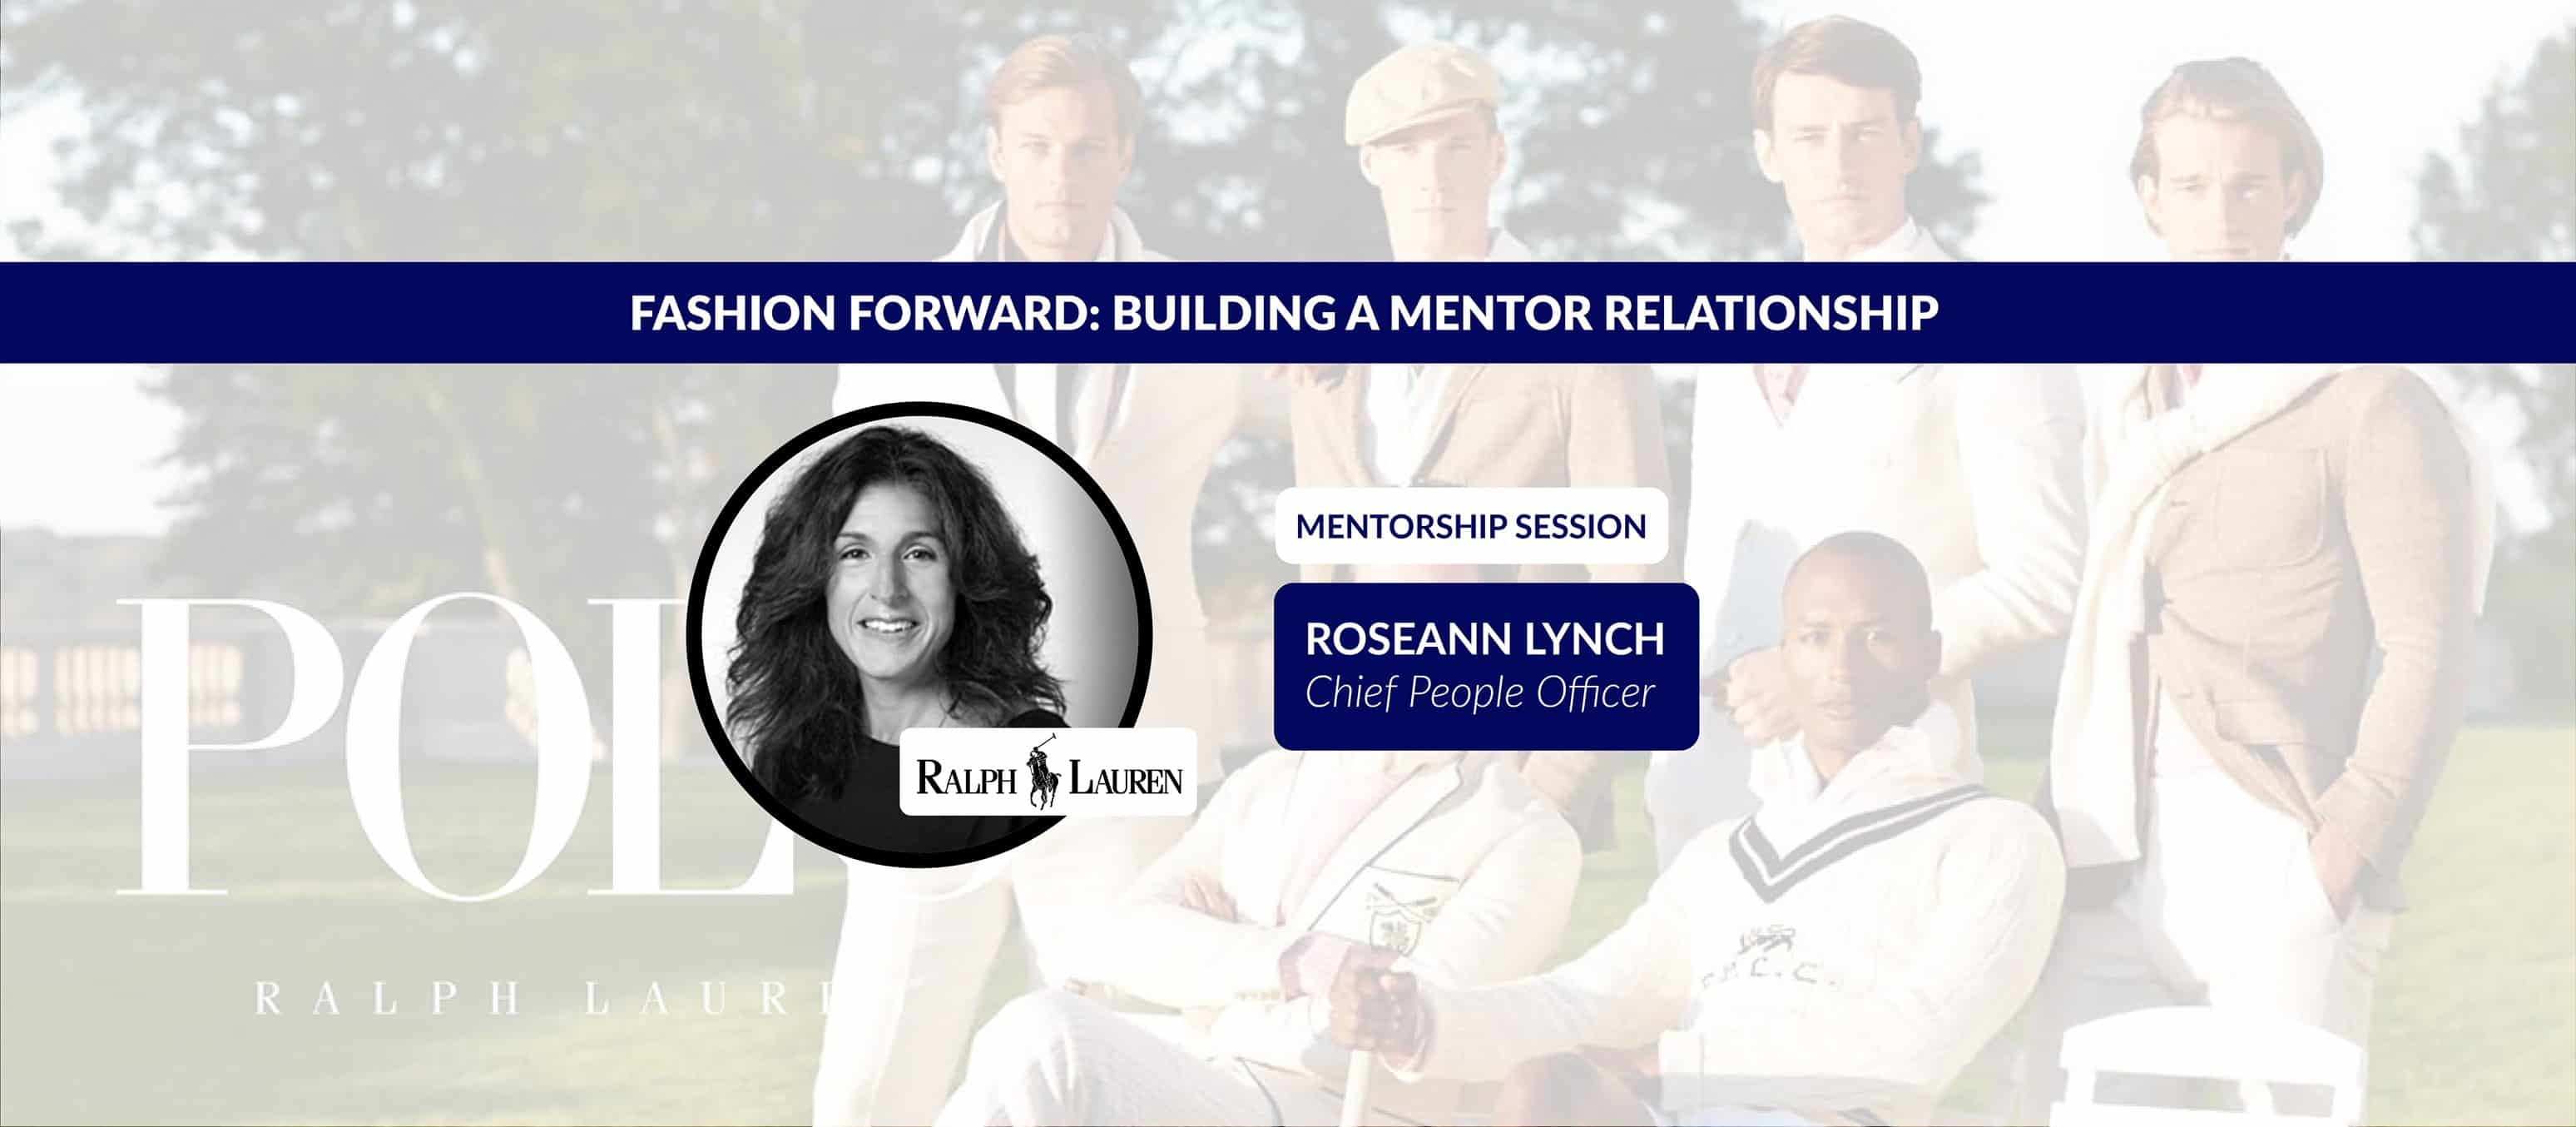 Fashion Forward: Building a Mentor Relationship with Ralph Lauren